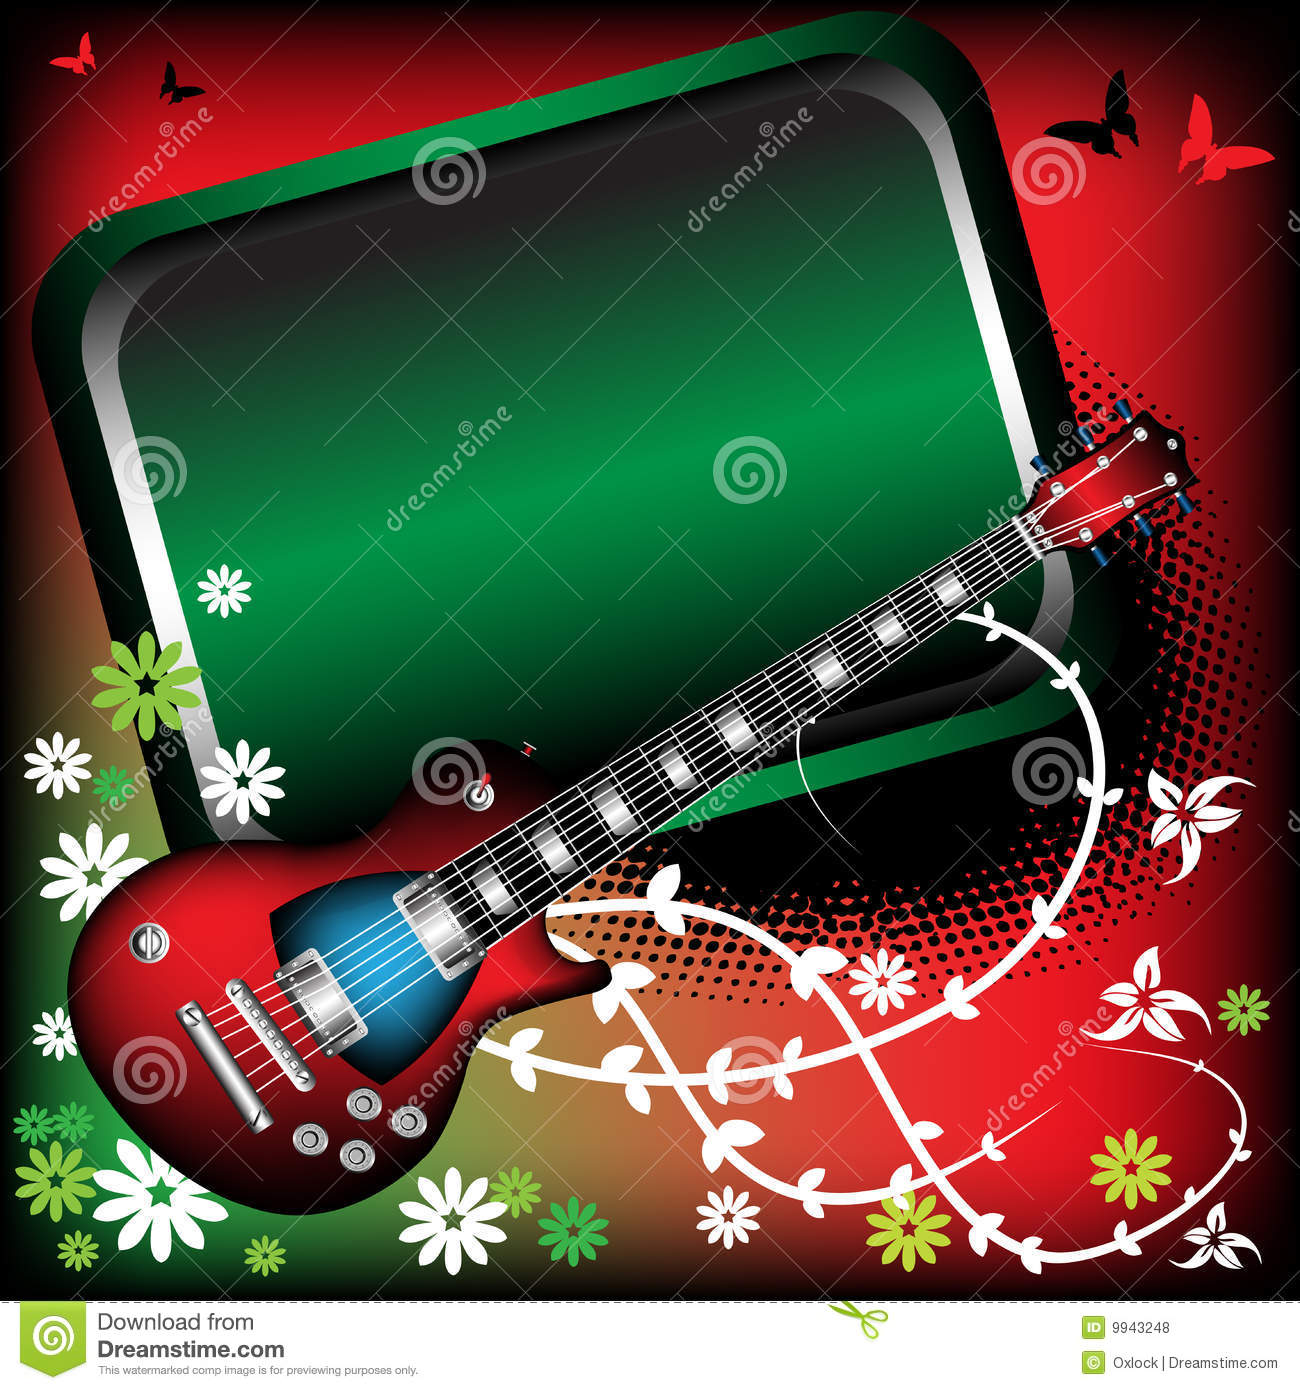 red guitar and green frame